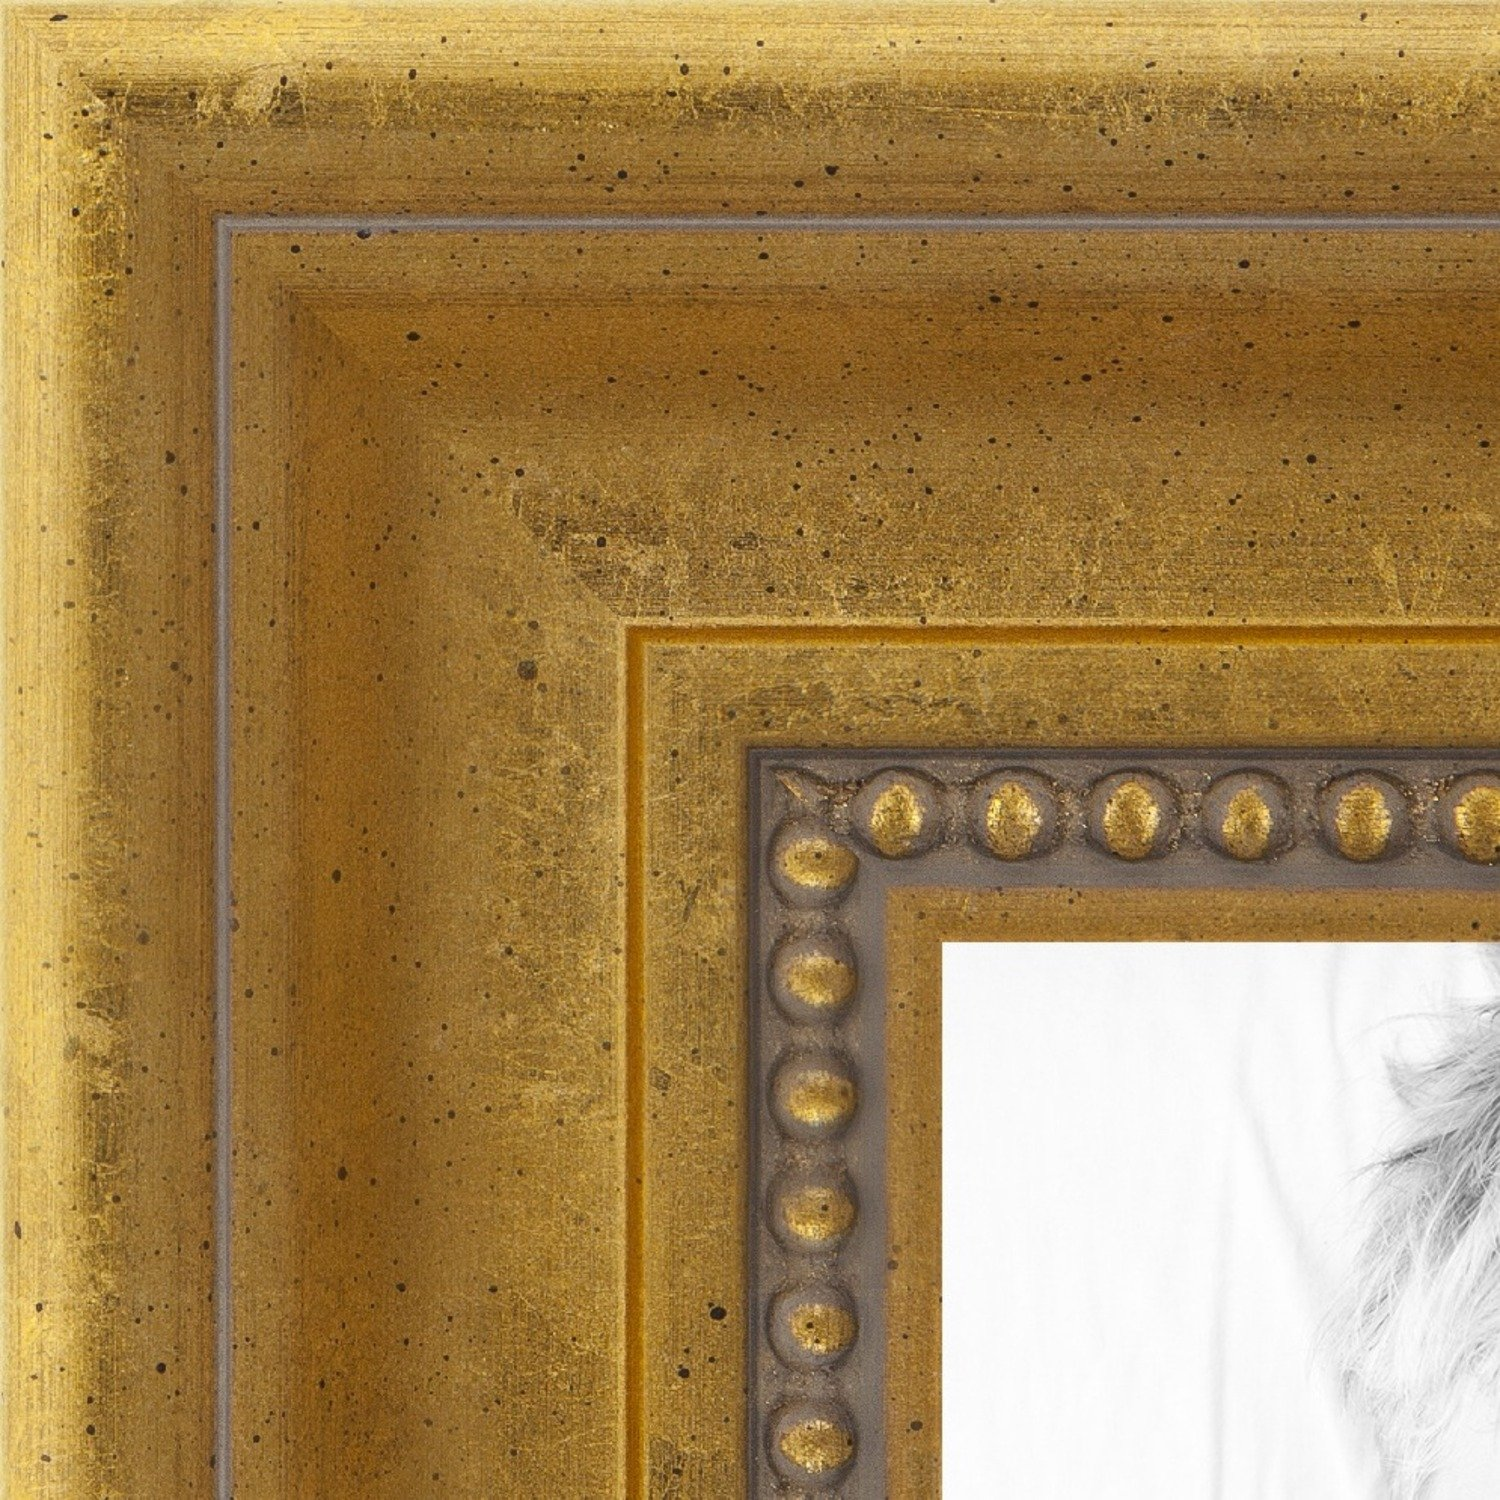 ArtToFrames 16x36 inch Antique Gold with Beaded Detailing Wood Picture Frame, 2WOMD5042-16x36